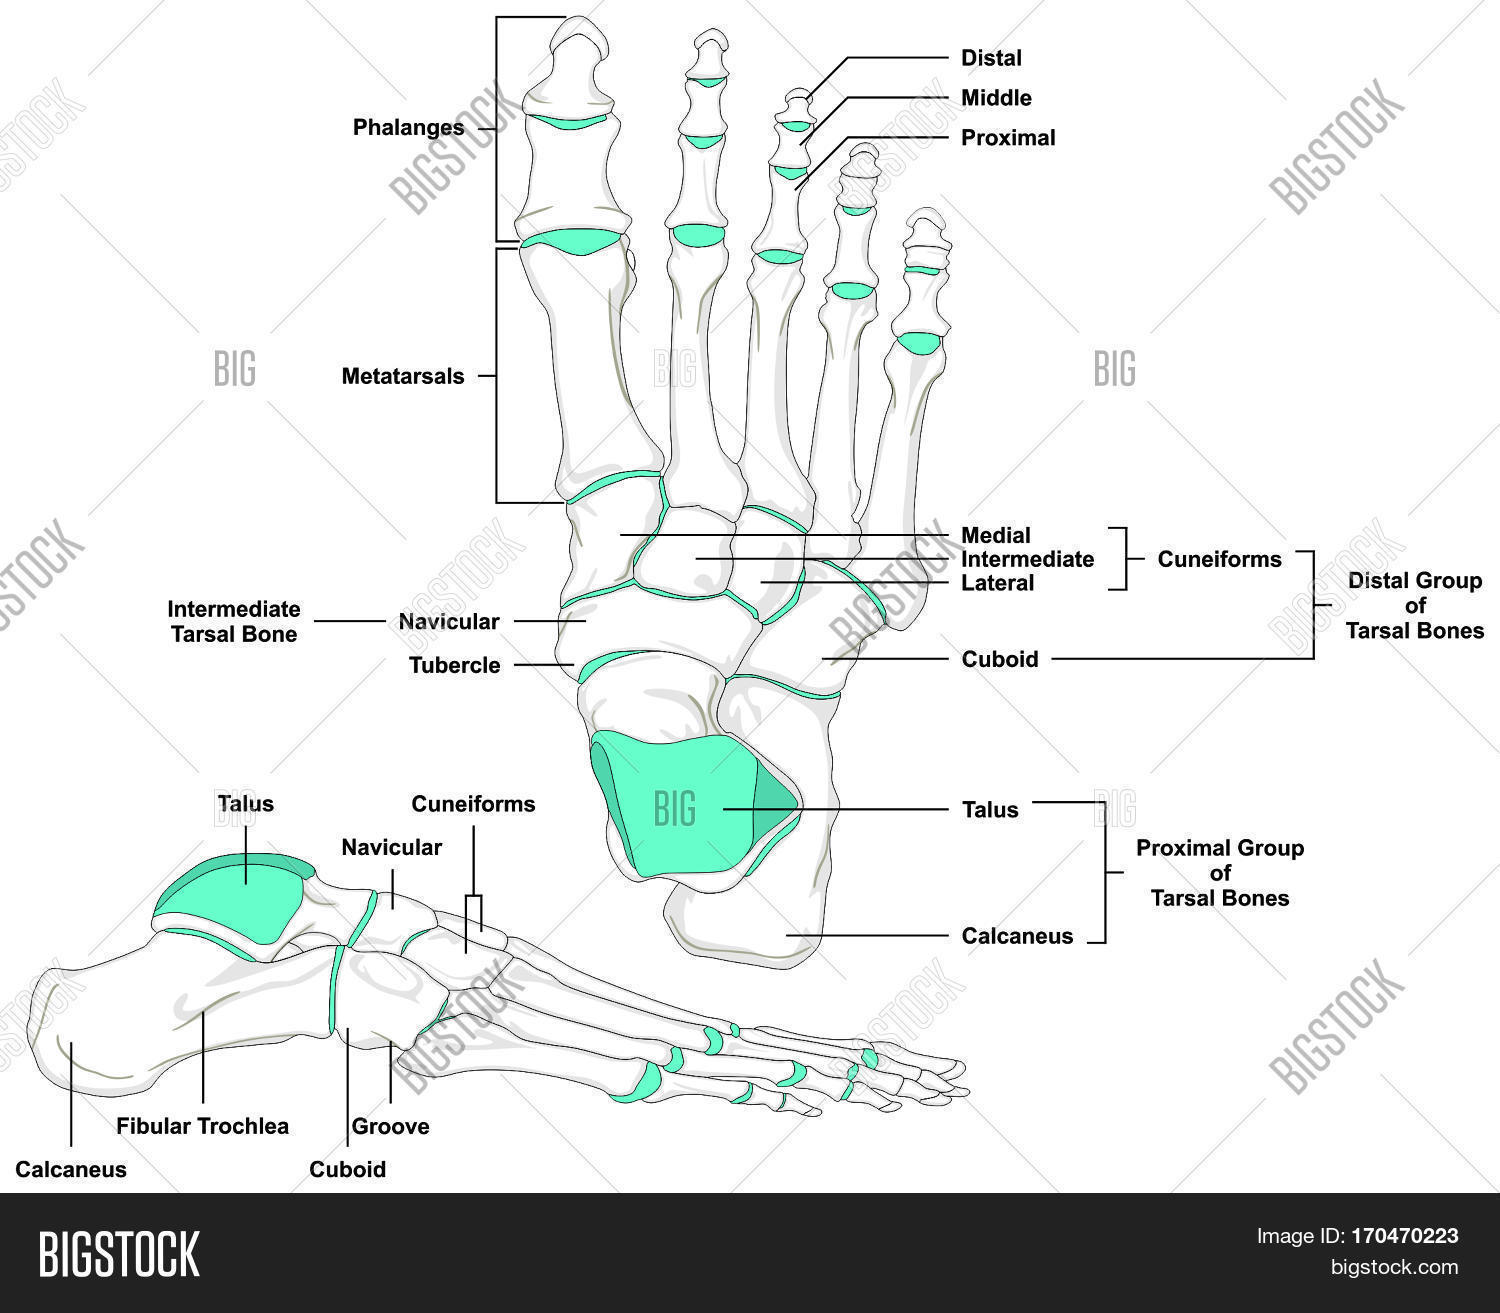 Human Foot Bones Image & Photo (Free Trial) | Bigstock